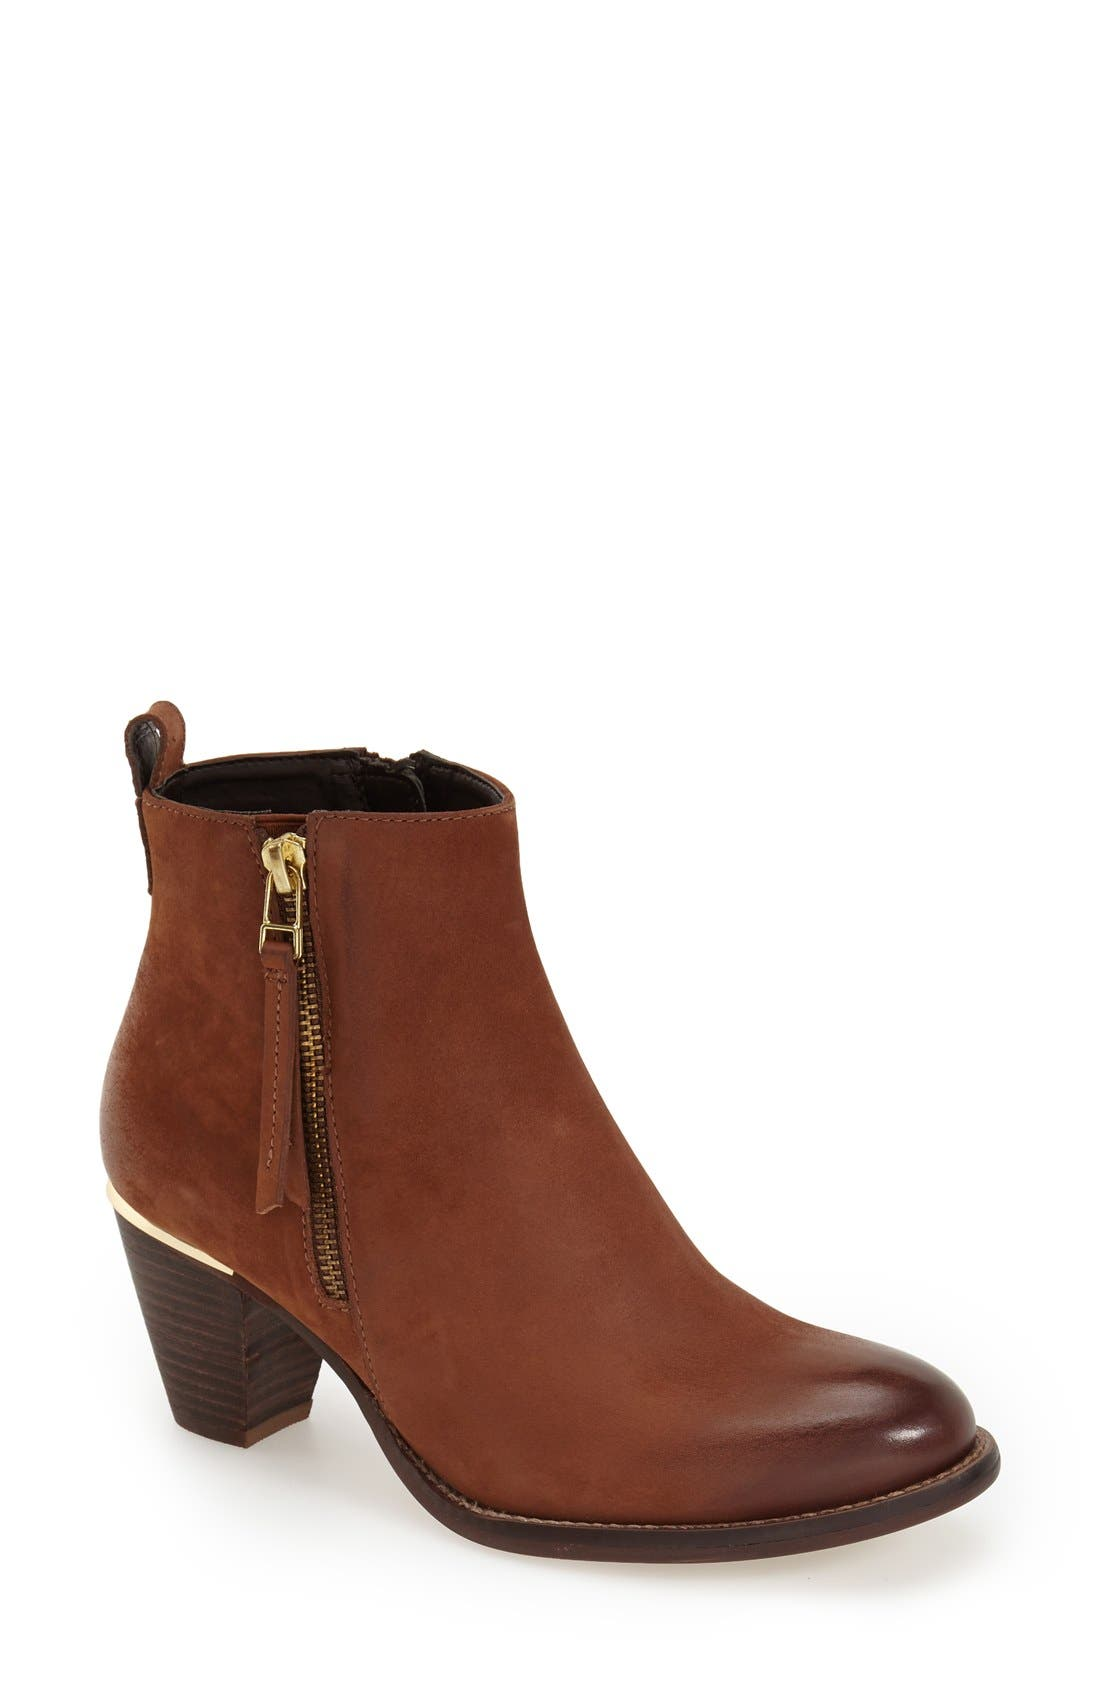 Alternate Image 1 Selected - Steve Madden 'Wantagh' Leather Ankle Boot (Women)